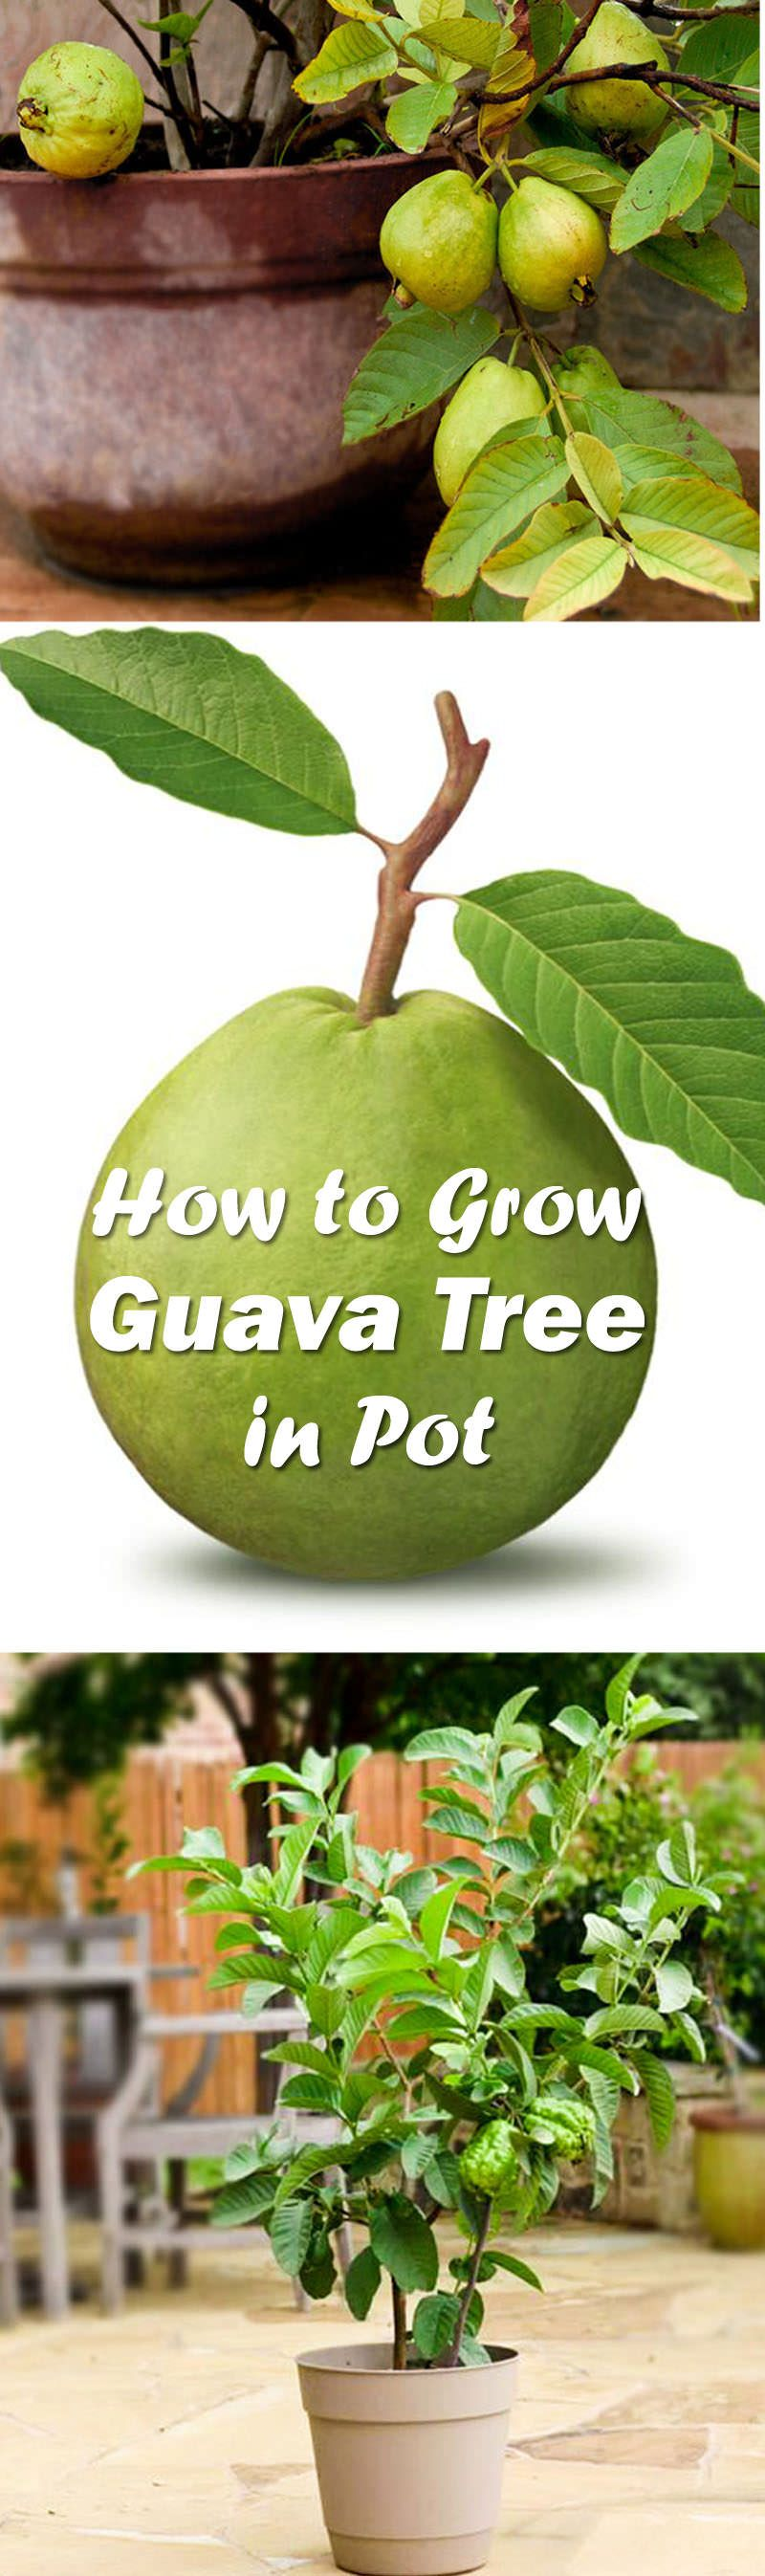 Growing guava tree in container guava tree delicious fruit and growing guava tree in container ccuart Image collections